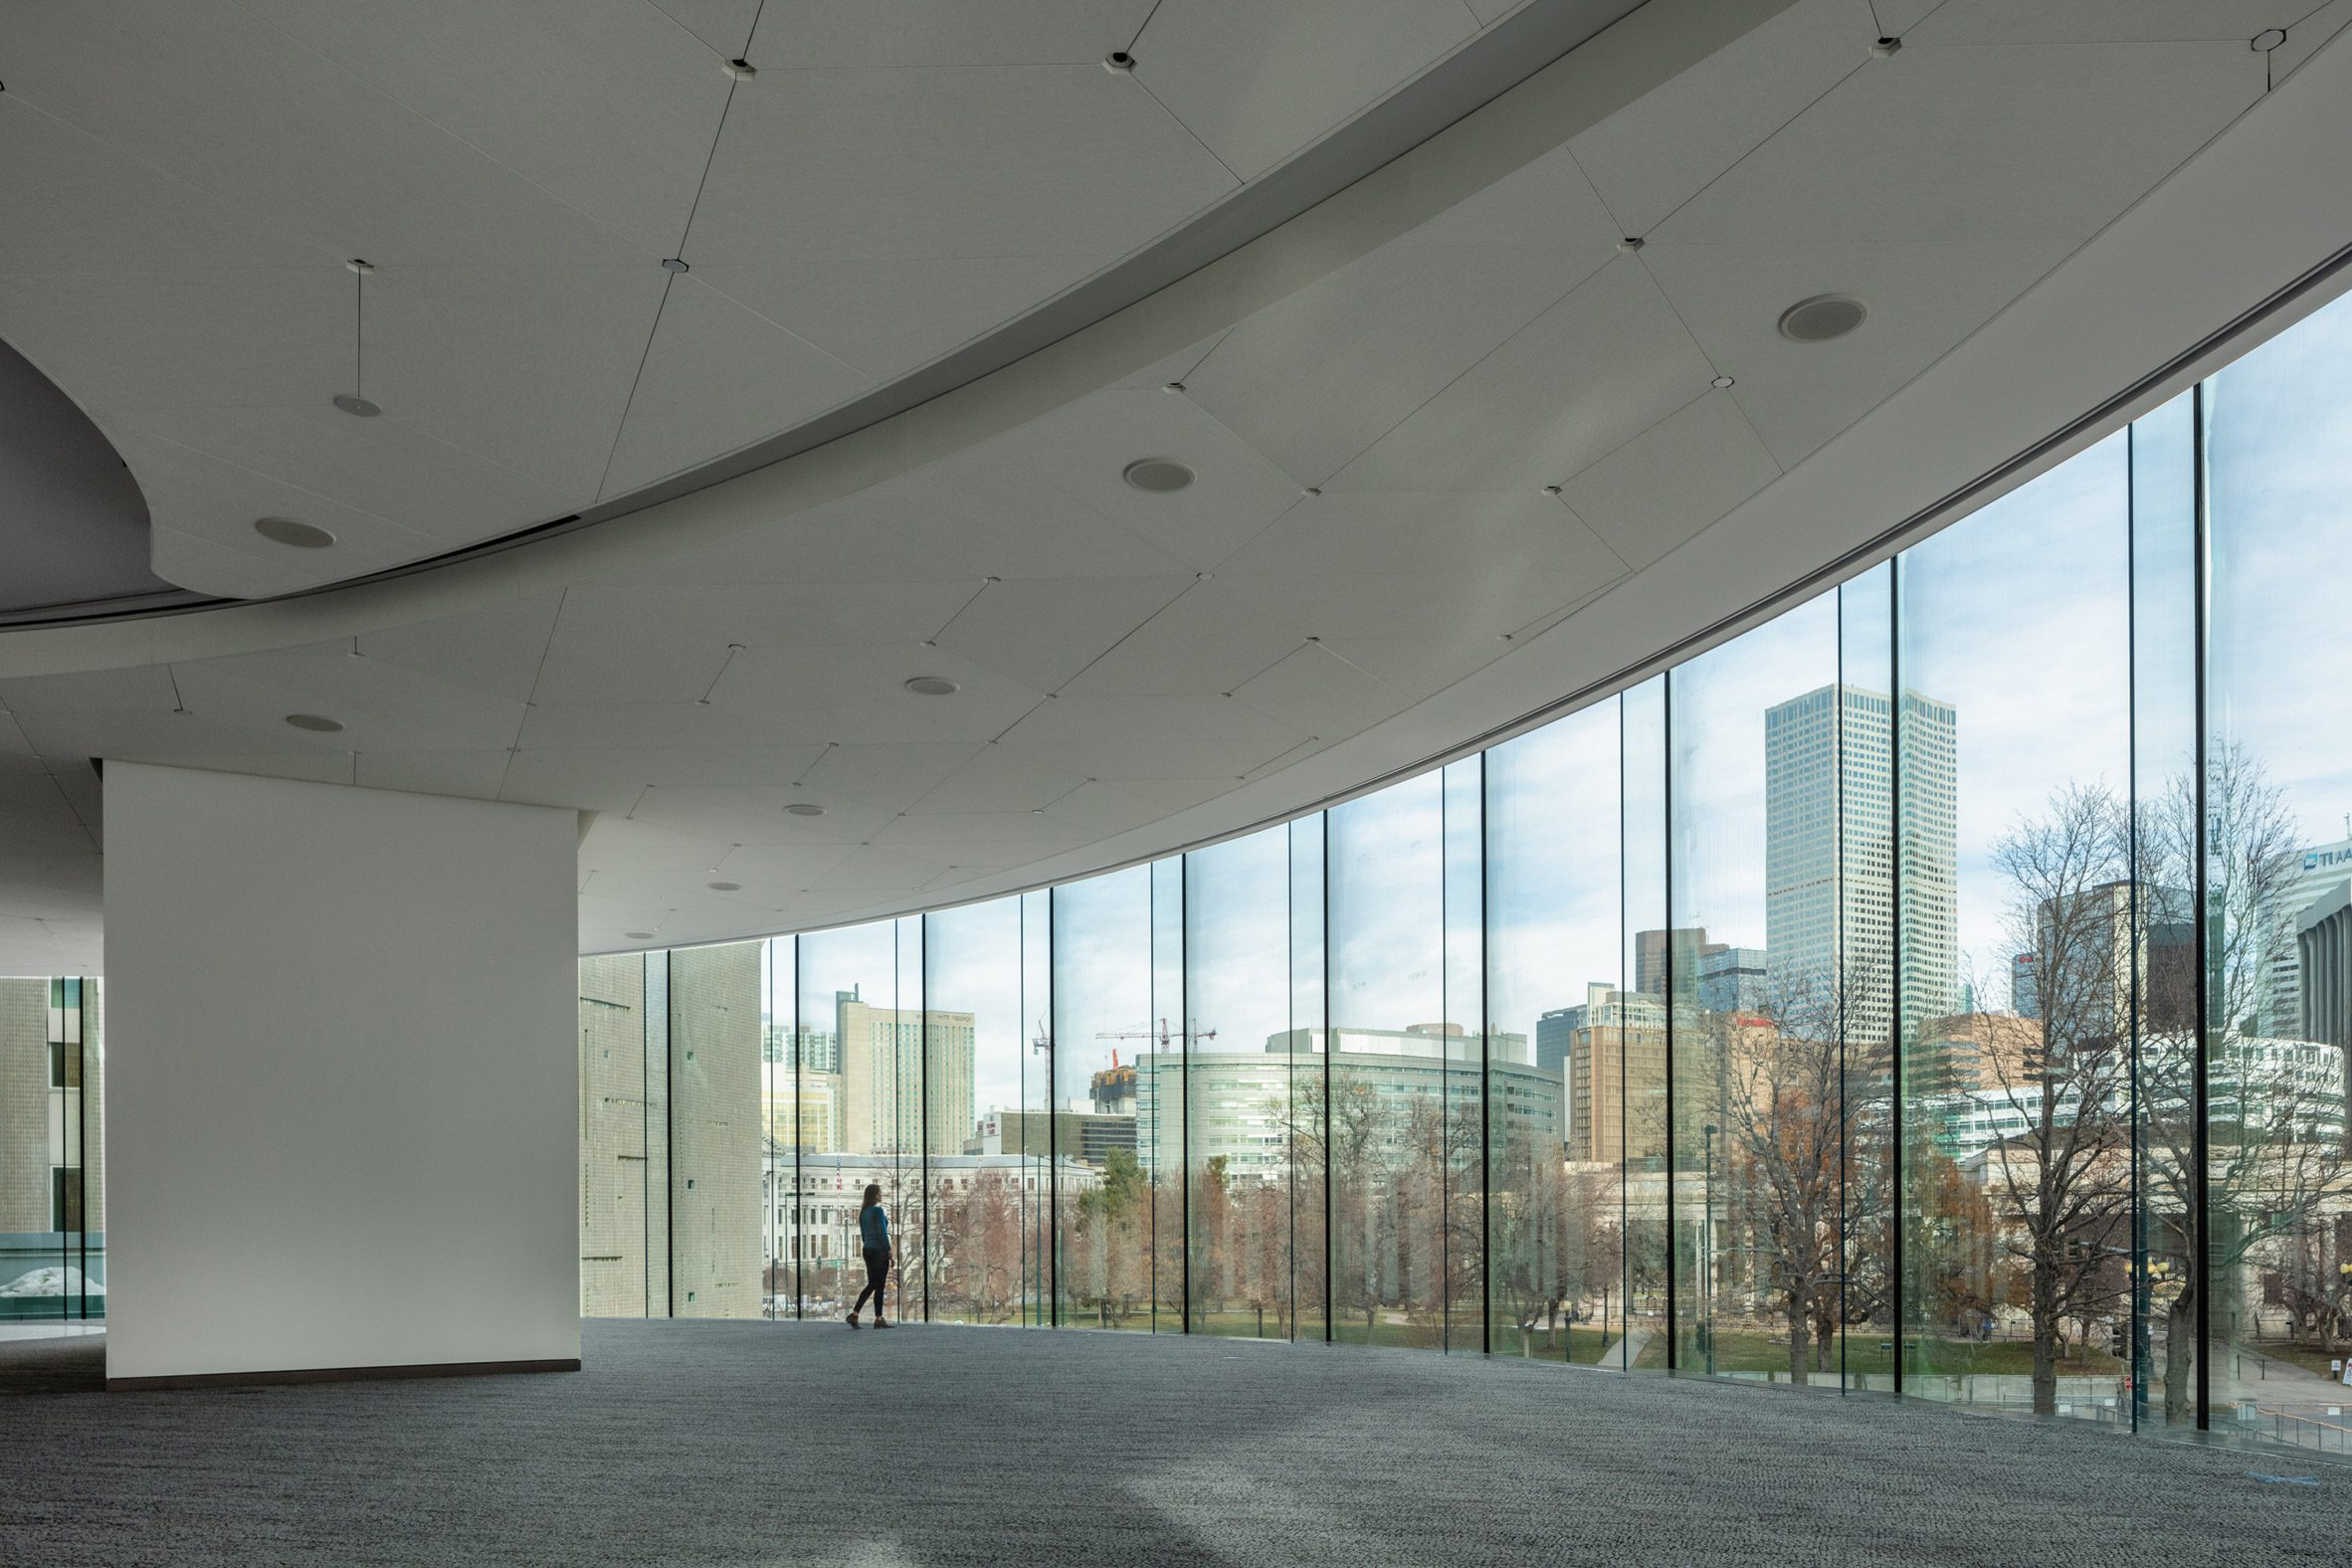 The art museum's welcome centre has expansive views